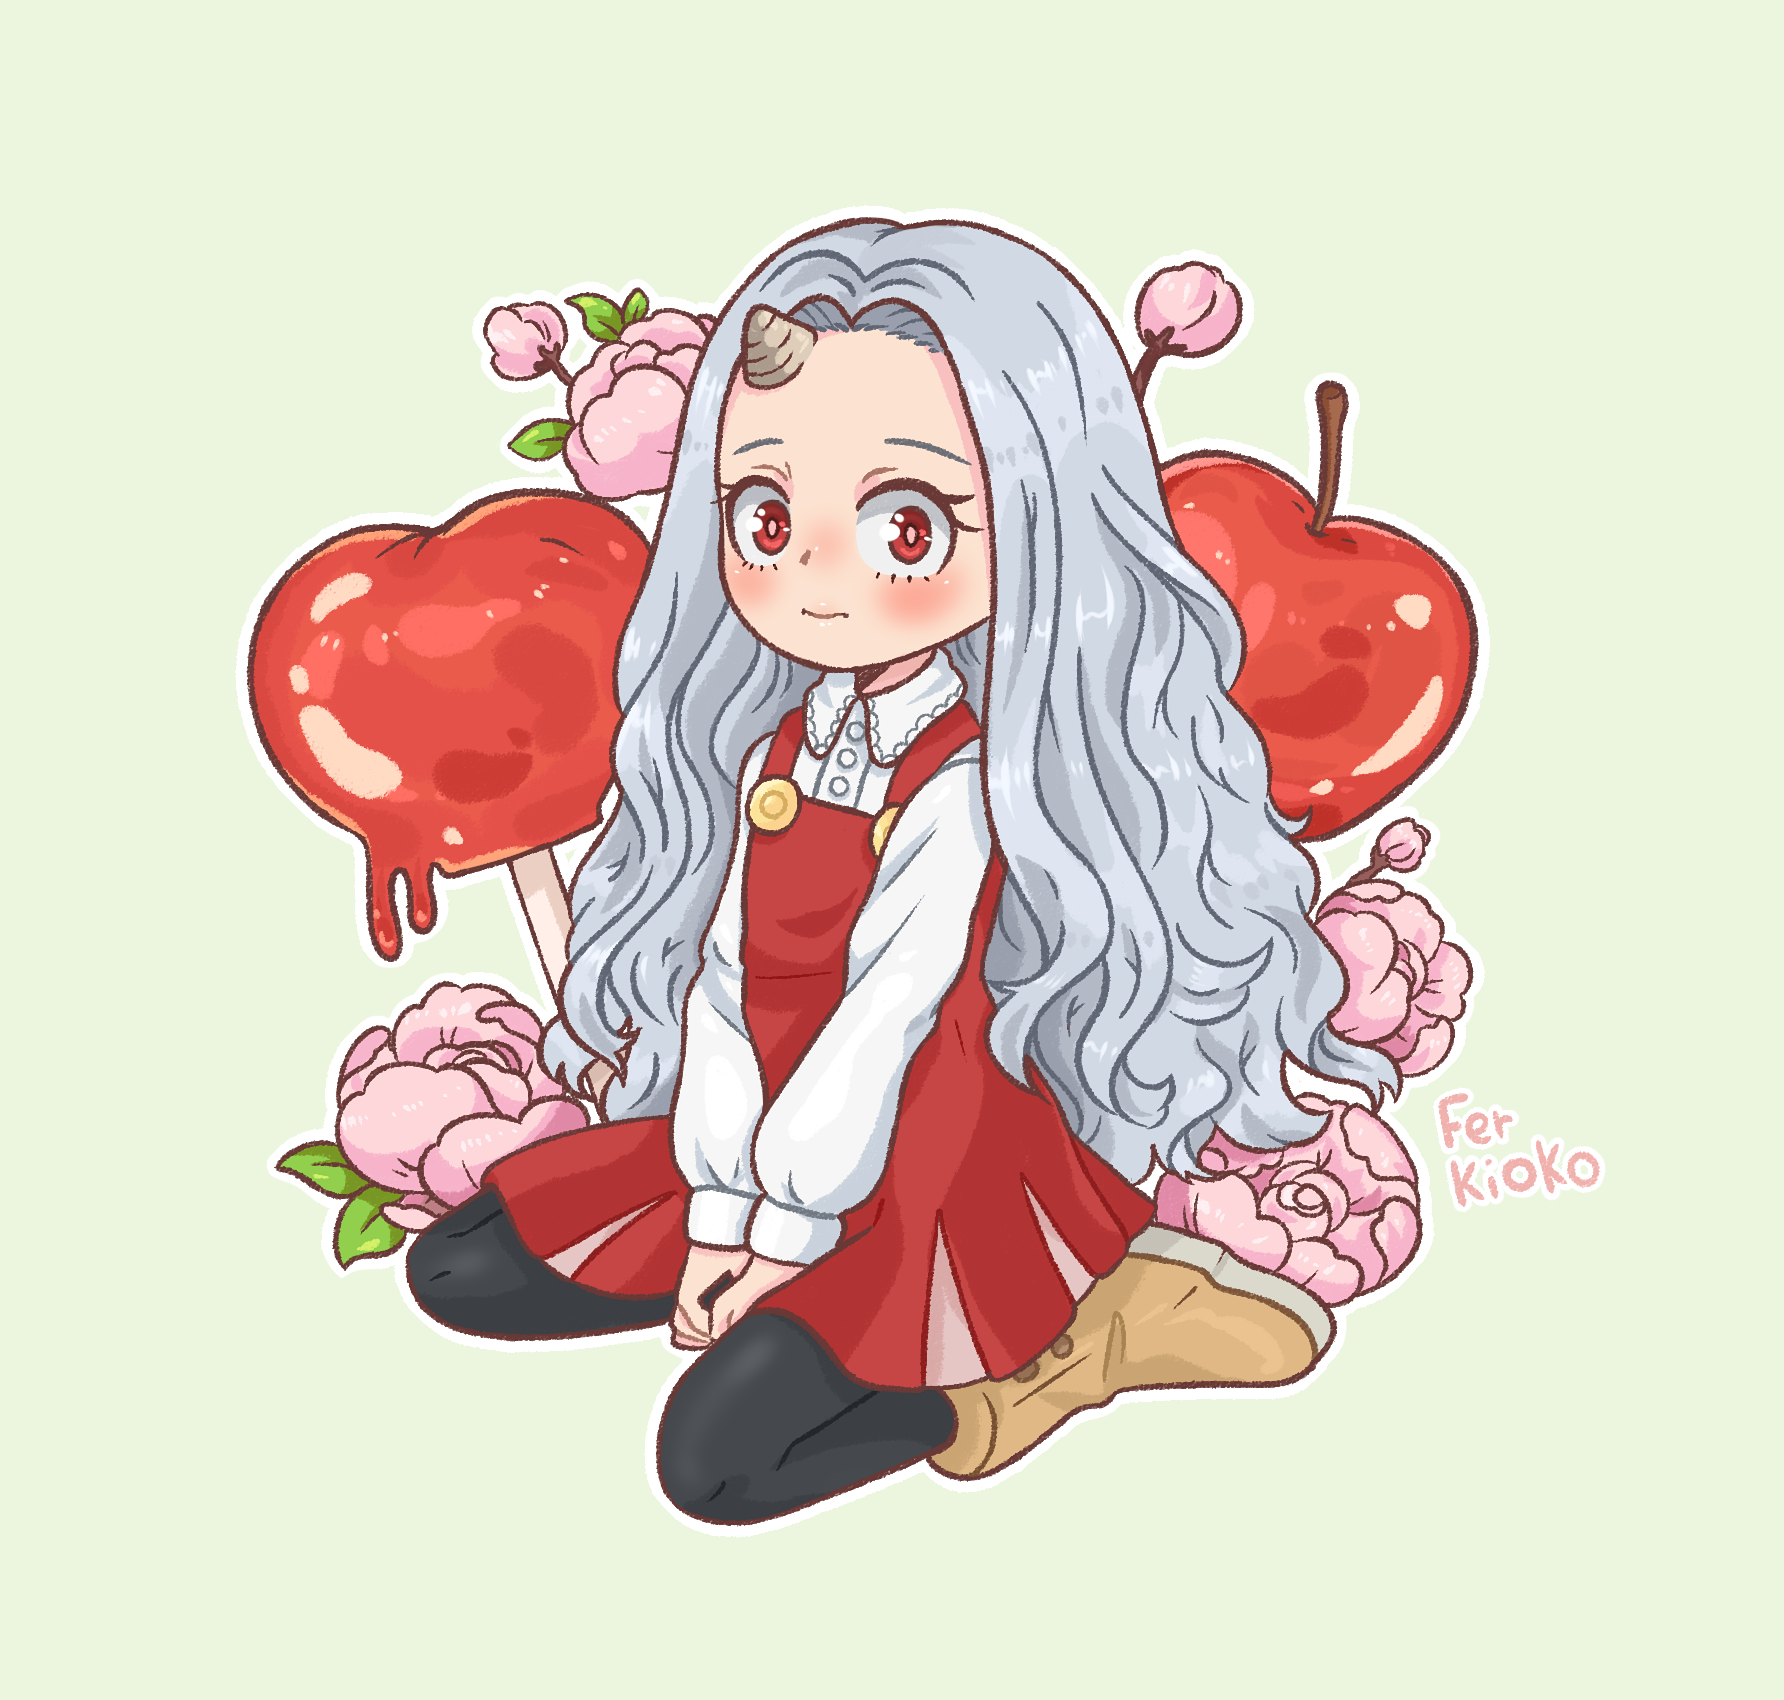 Eri Boku No Hero Academia By Ferkioko On Deviantart Check out our eri bnha selection for the very best in unique or custom, handmade pieces from our keychains shops. eri boku no hero academia by ferkioko